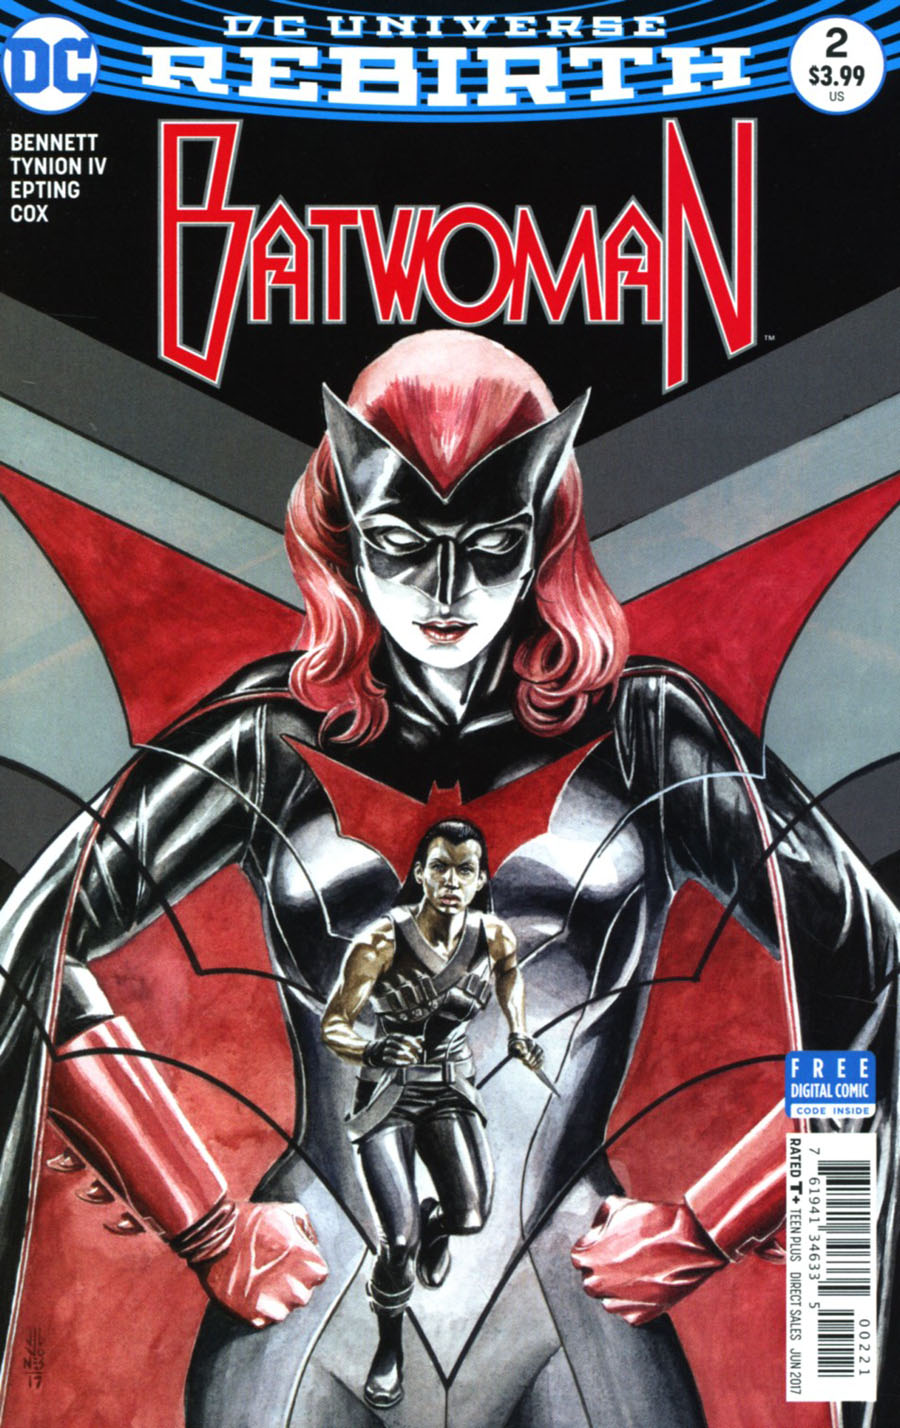 Batwoman Vol 2 #2 Cover B Variant JG Jones Cover